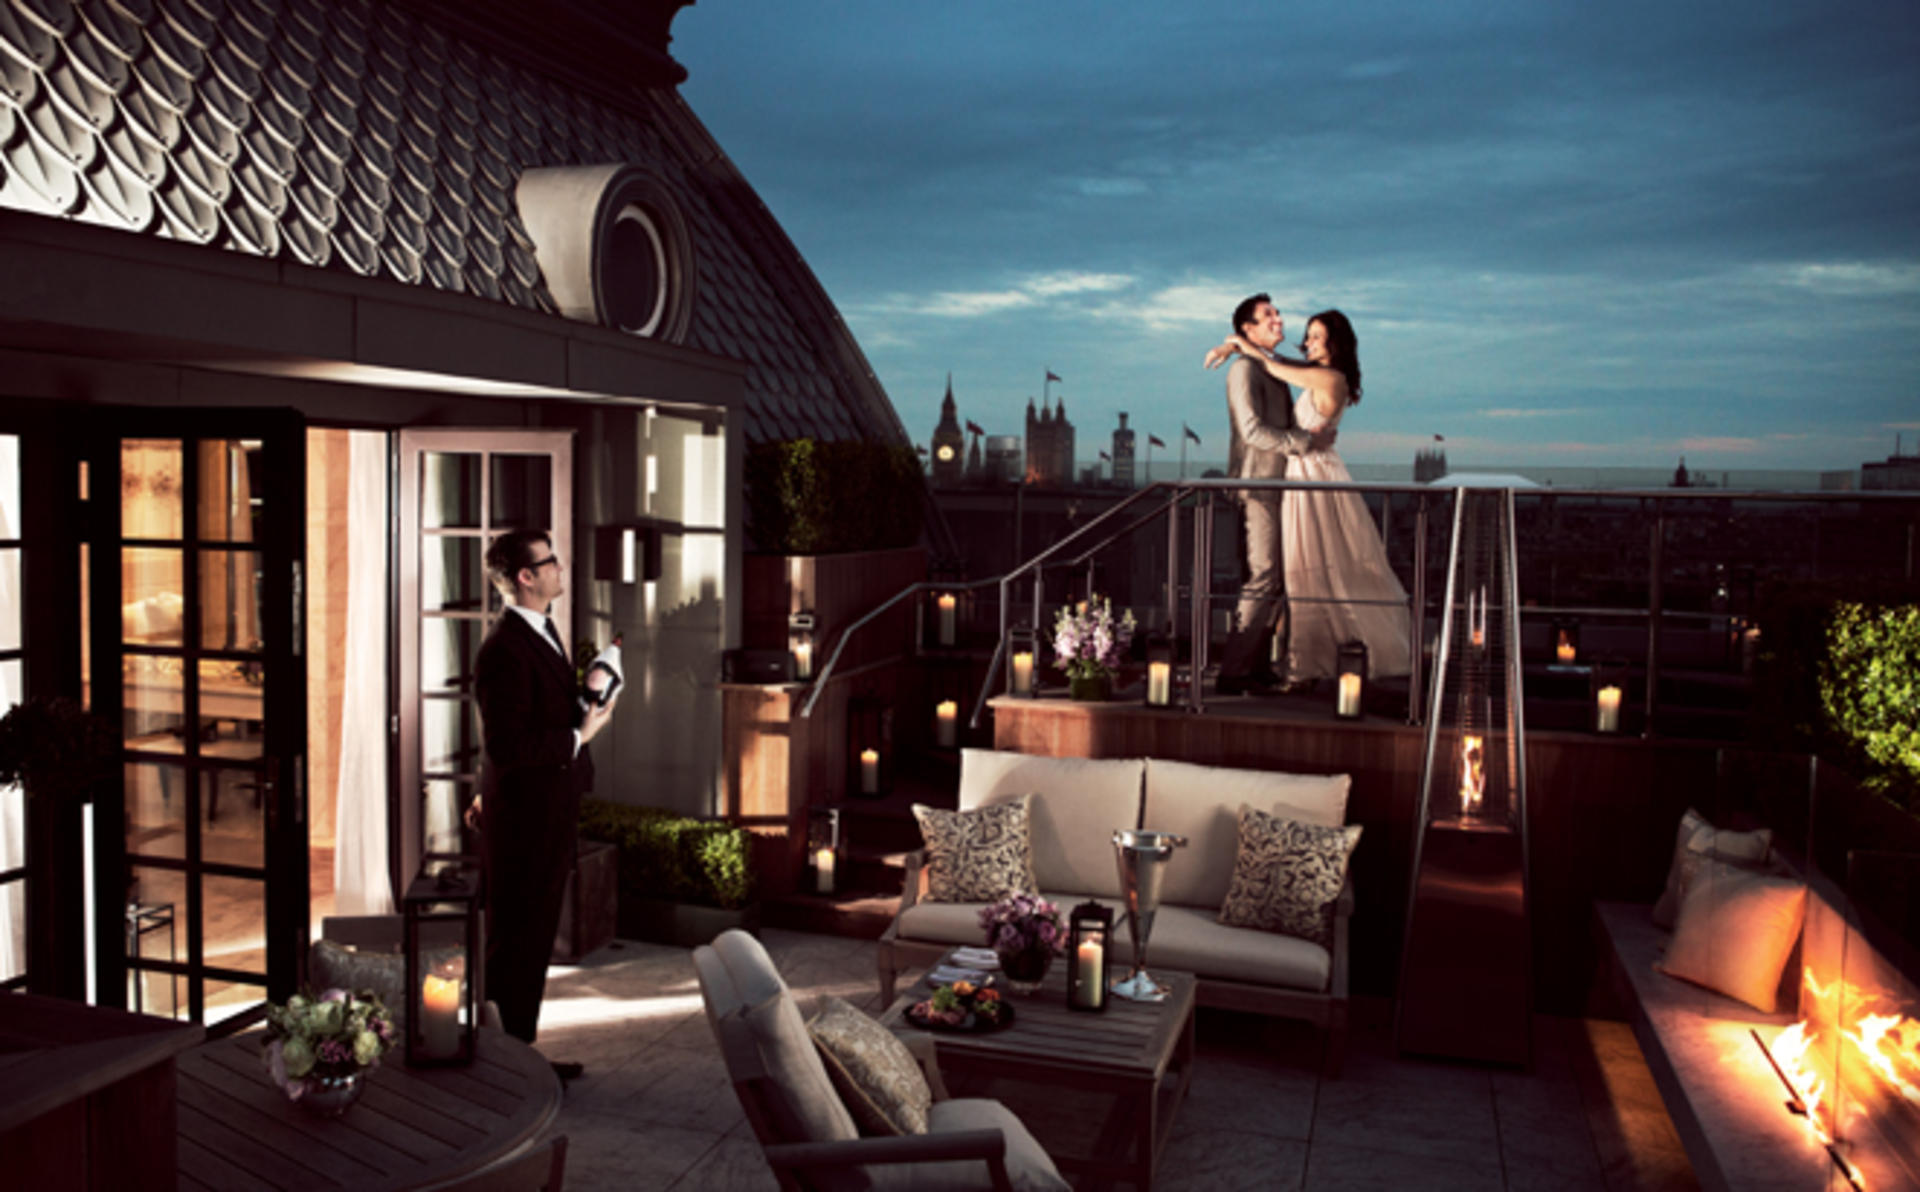 Corinthia_London_Roof — — 之巅 — — 餐饮